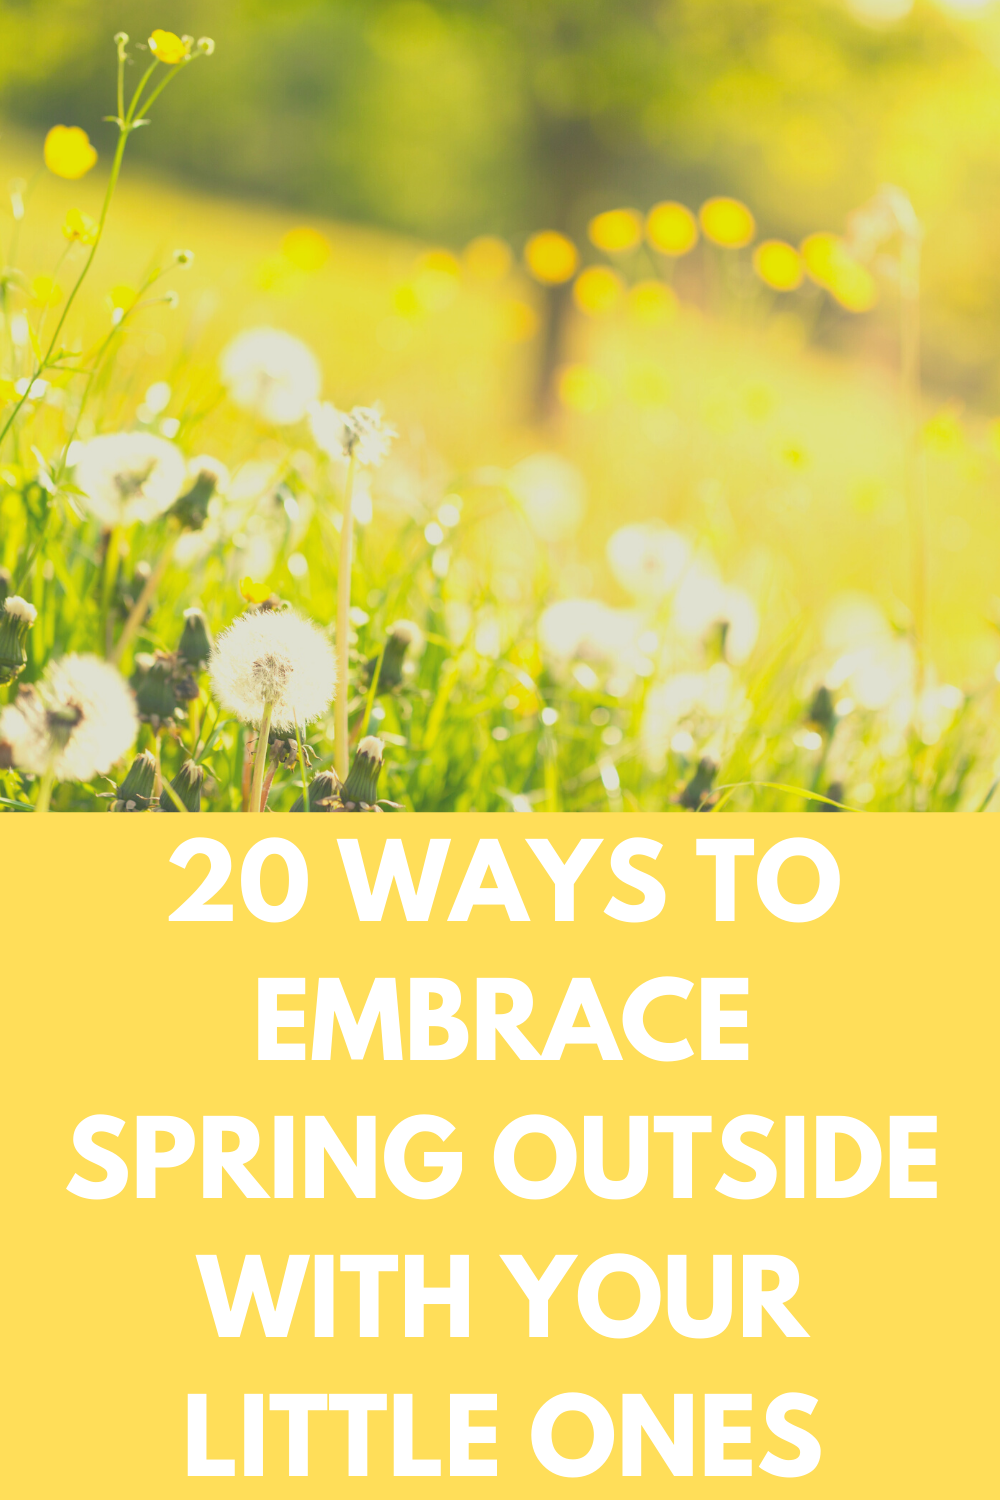 20 Ways To Embrace Spring Outside With Your Little Ones